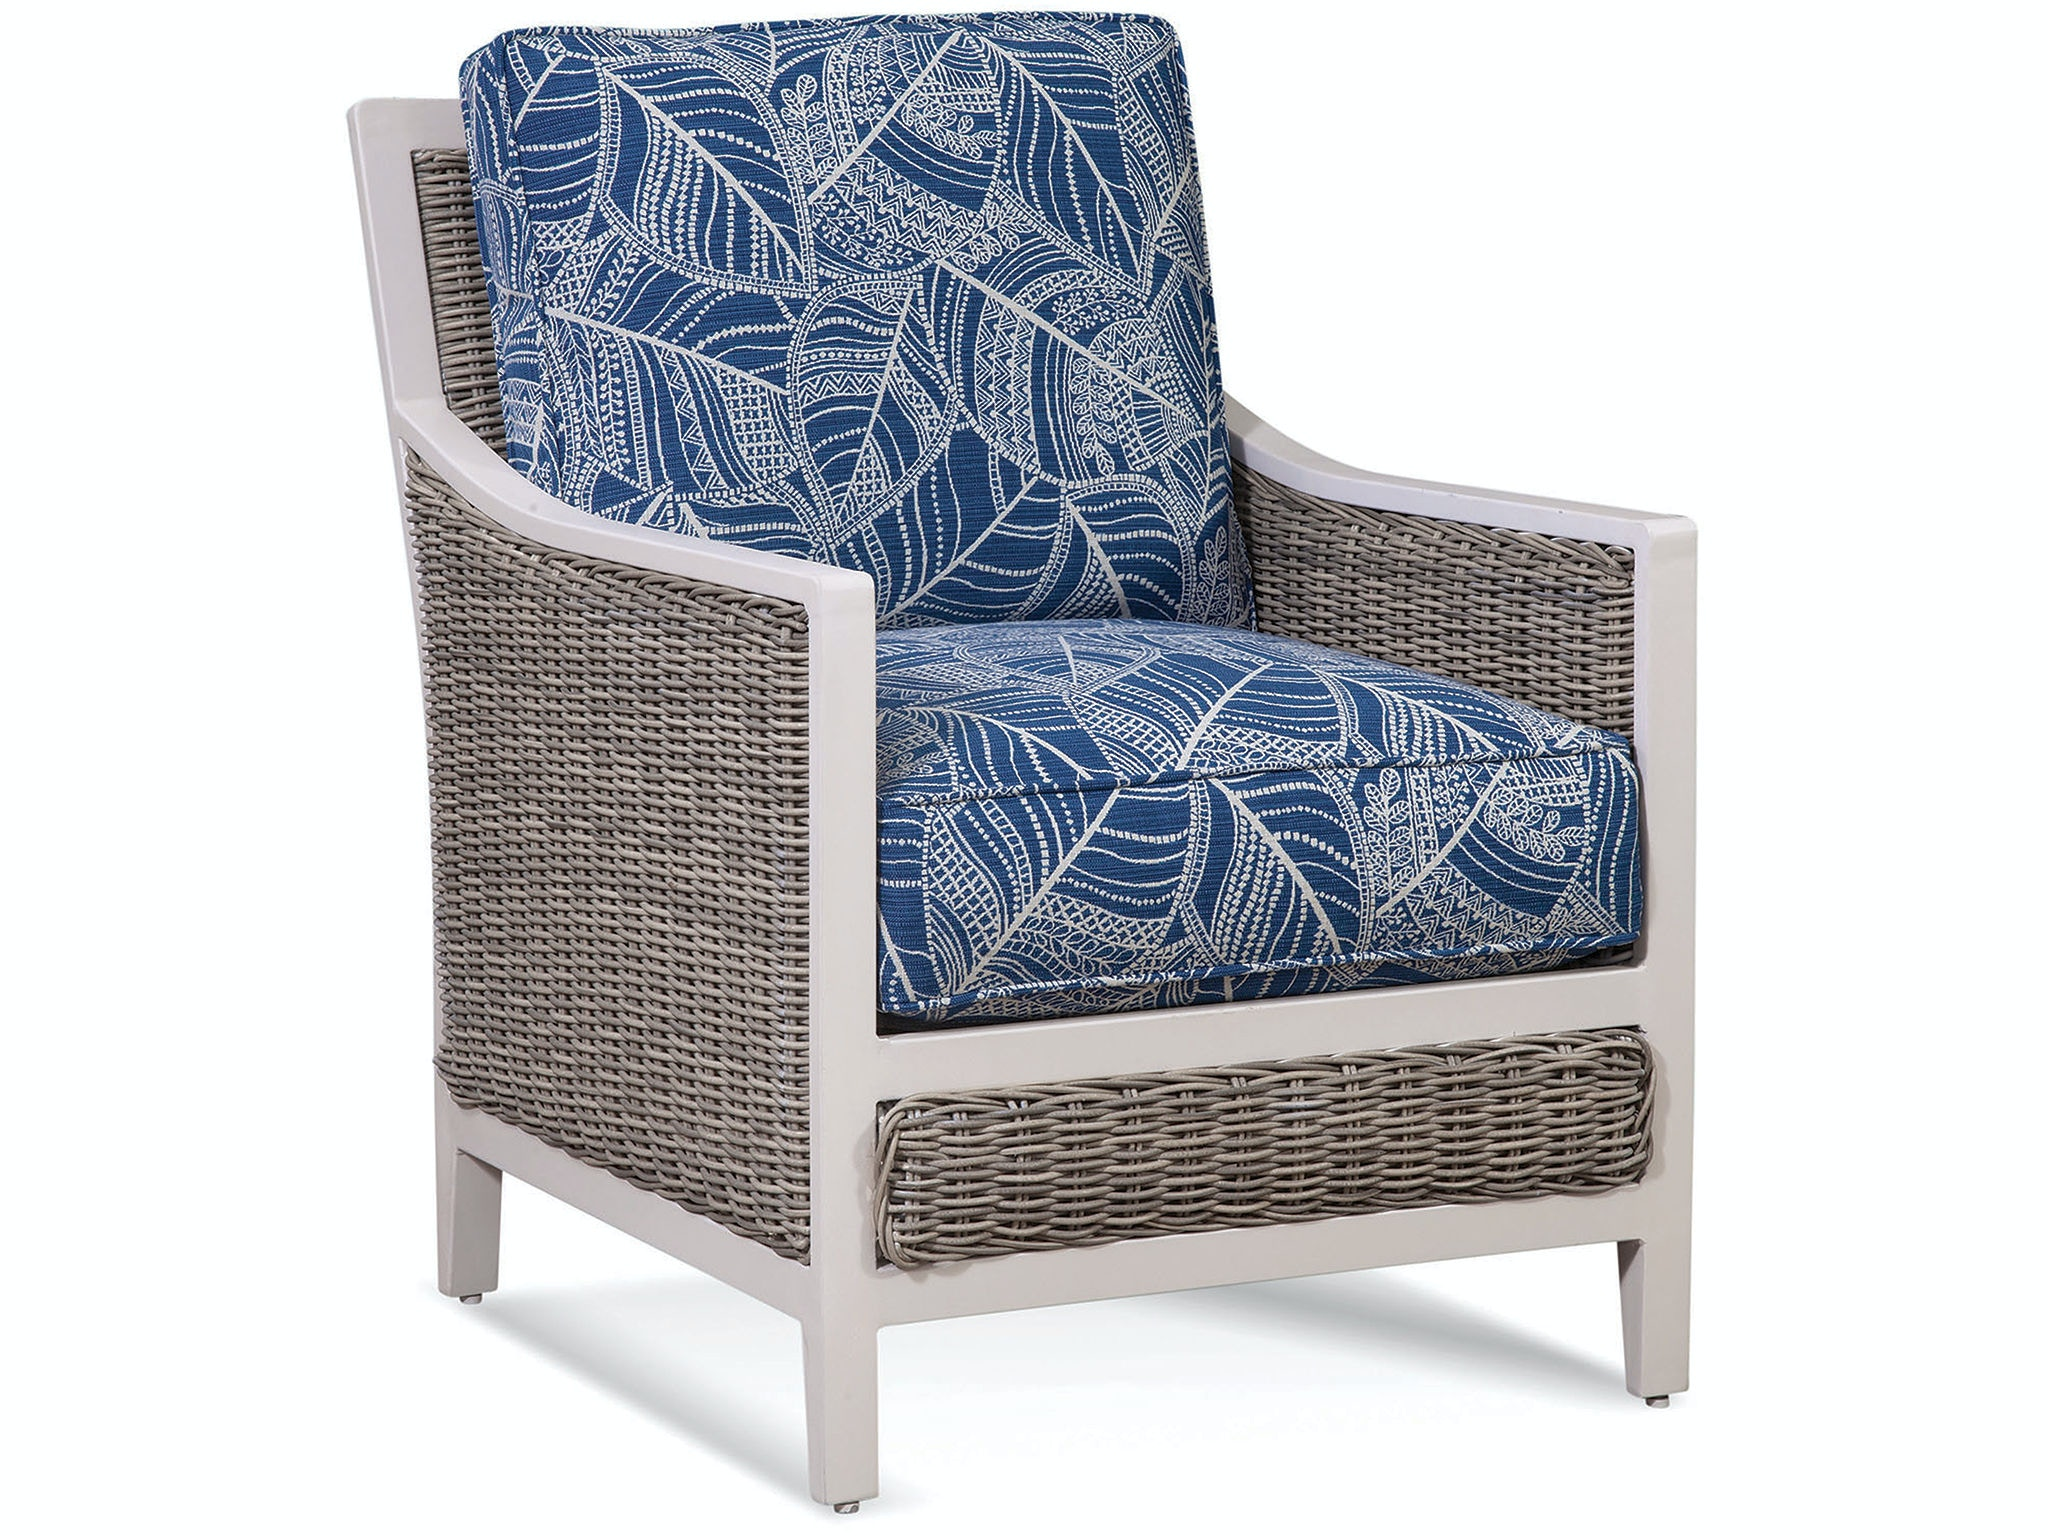 Braxton Culler Outdoor Arm Chair 418-001  sc 1 st  Seaside Furniture & Braxton Culler Outdoor/Patio Outdoor Arm Chair 418-001 - Seaside ...